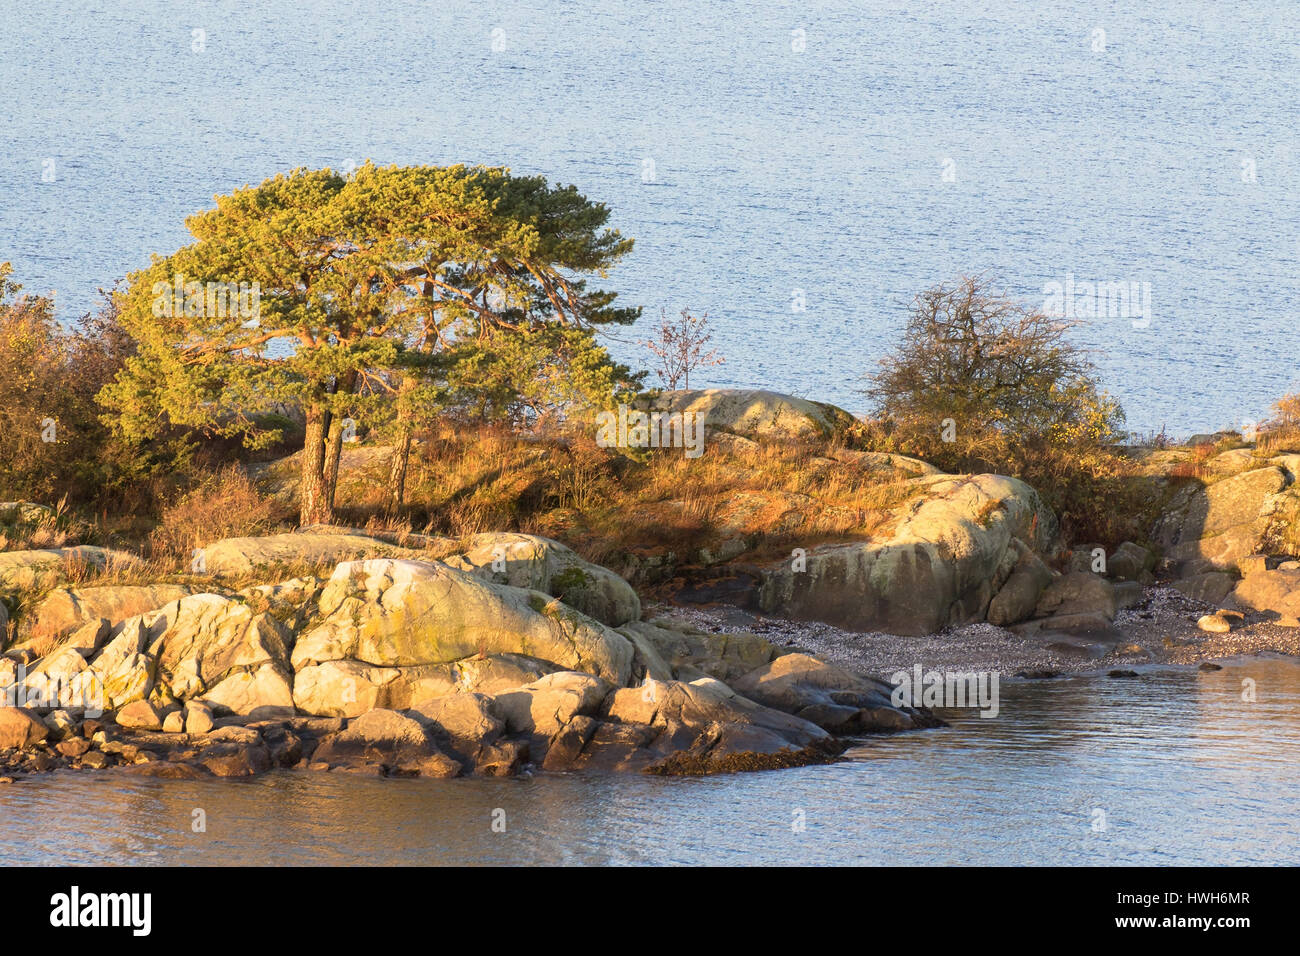 small island with pines in the Oslo fjord, Norway, Akershus, Oslo fjord, island, plants, pines, Pinus sp., seasons, - Stock Image